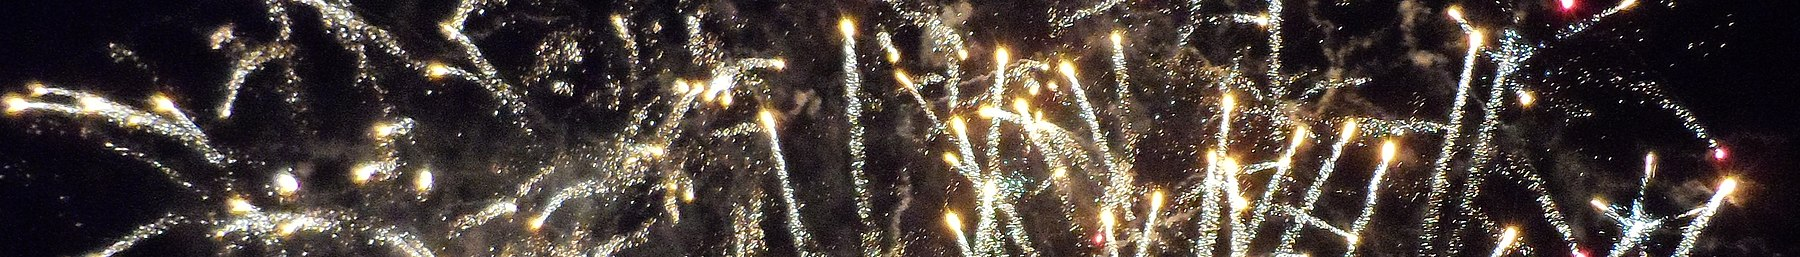 Lewes banner Bonfire Night fireworks display.JPG